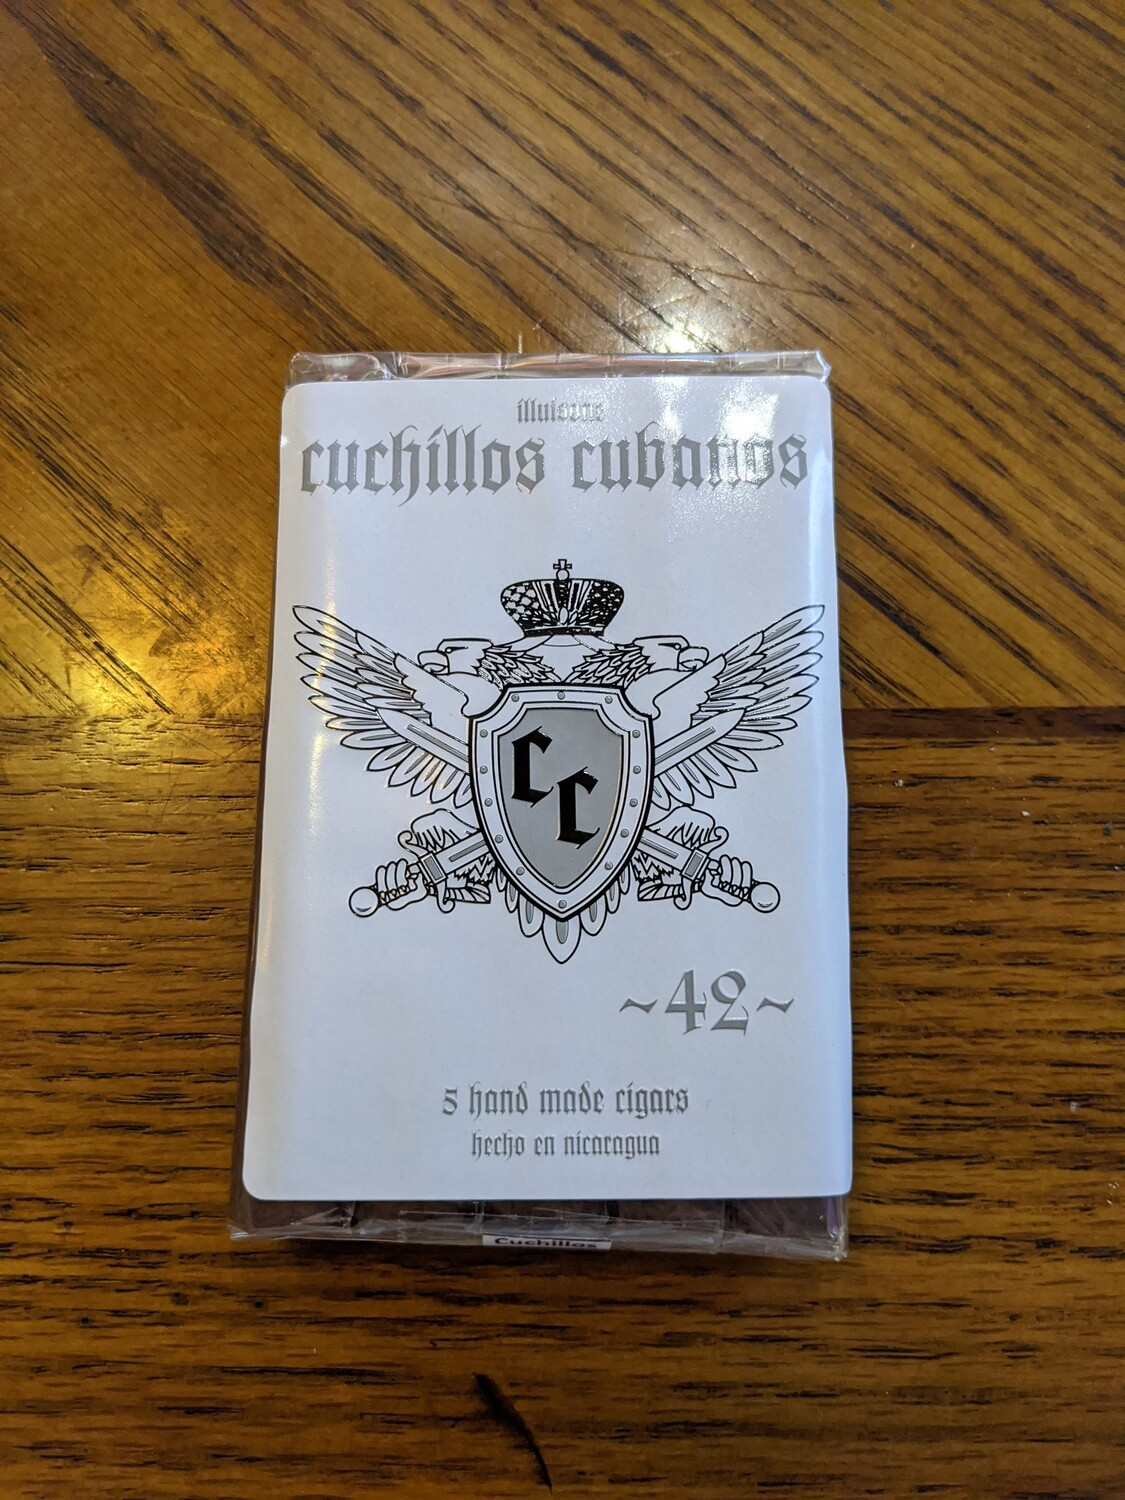 Illusione Cuchillos Cubanos 42 4 3/4 X 42 Single Cigar